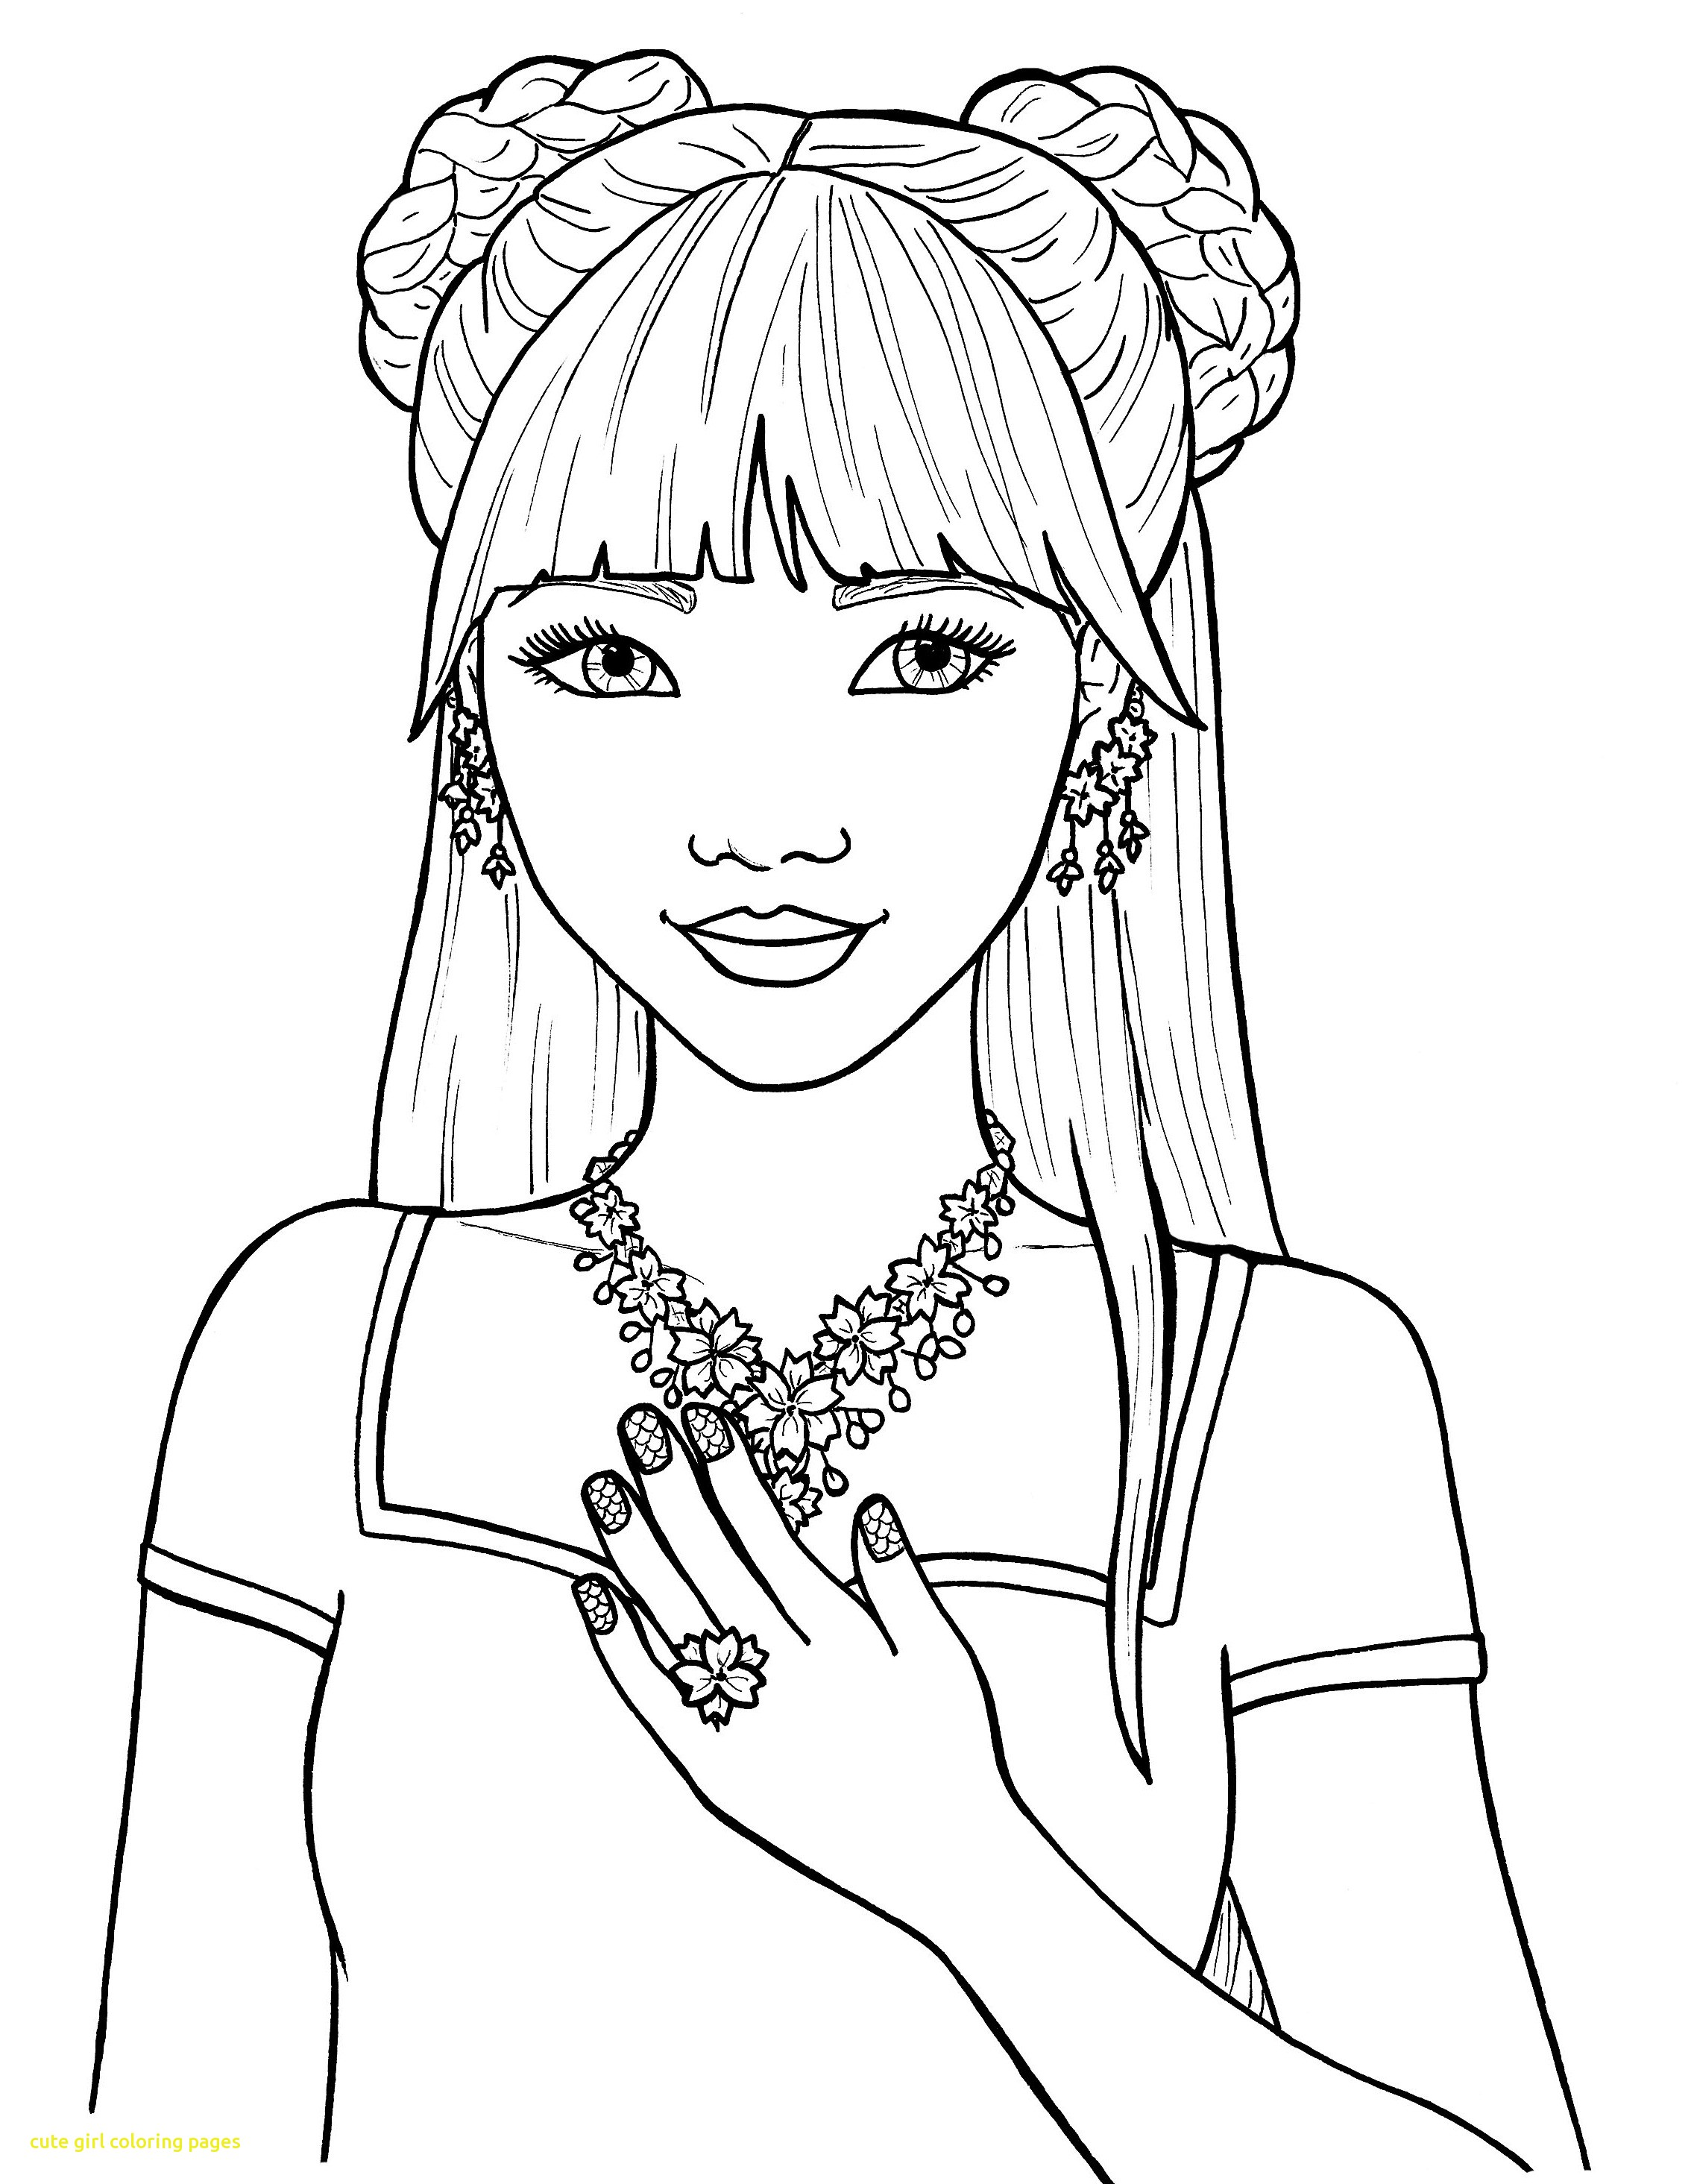 coloring pictures for teenagers coloring pages for girls best coloring pages for kids coloring teenagers for pictures